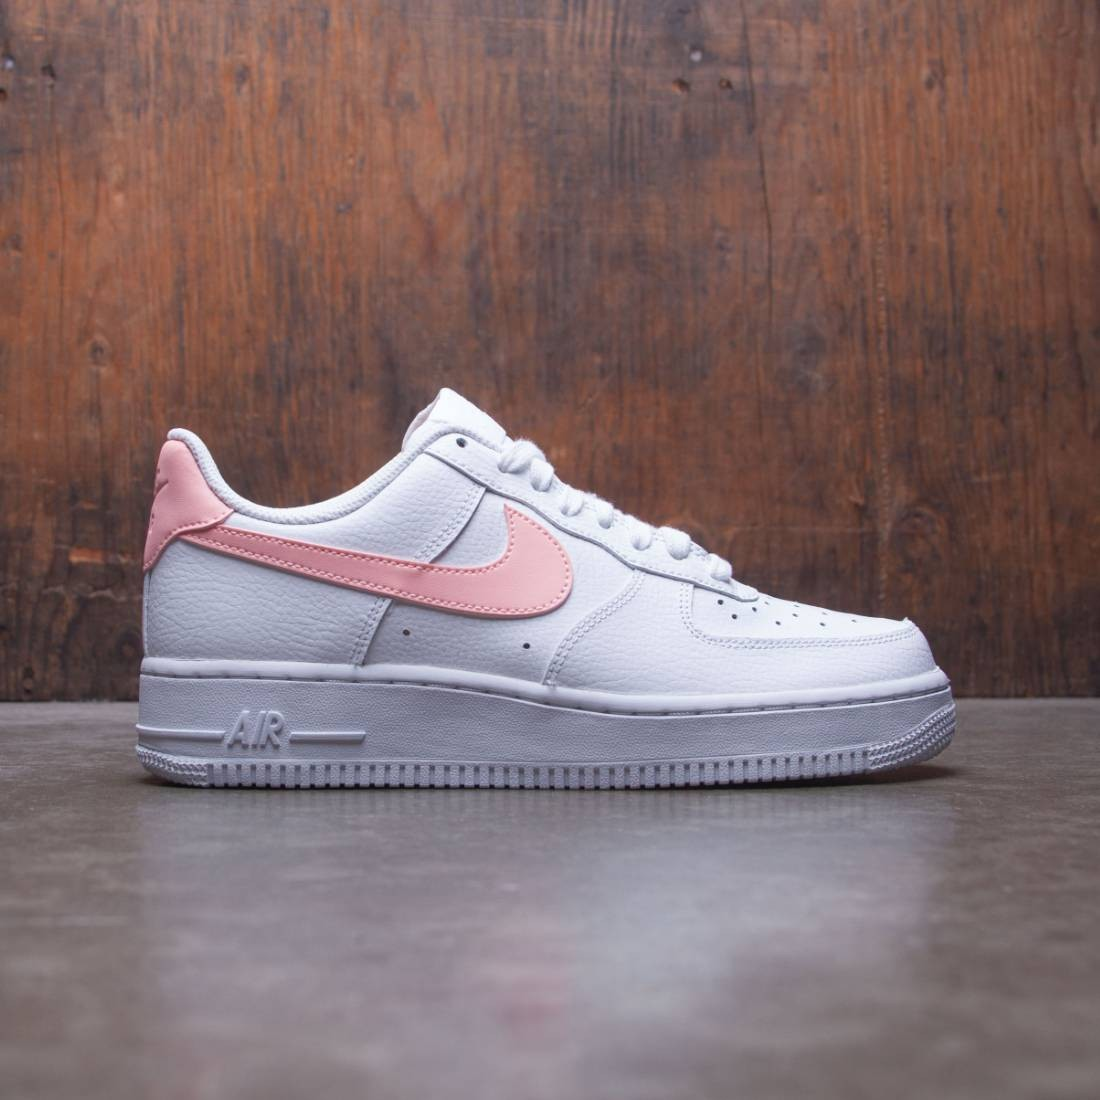 the latest 68a30 ee5a6 ... clearance nike women air force 1 07 white oracle pink white 33d6a 52b2b